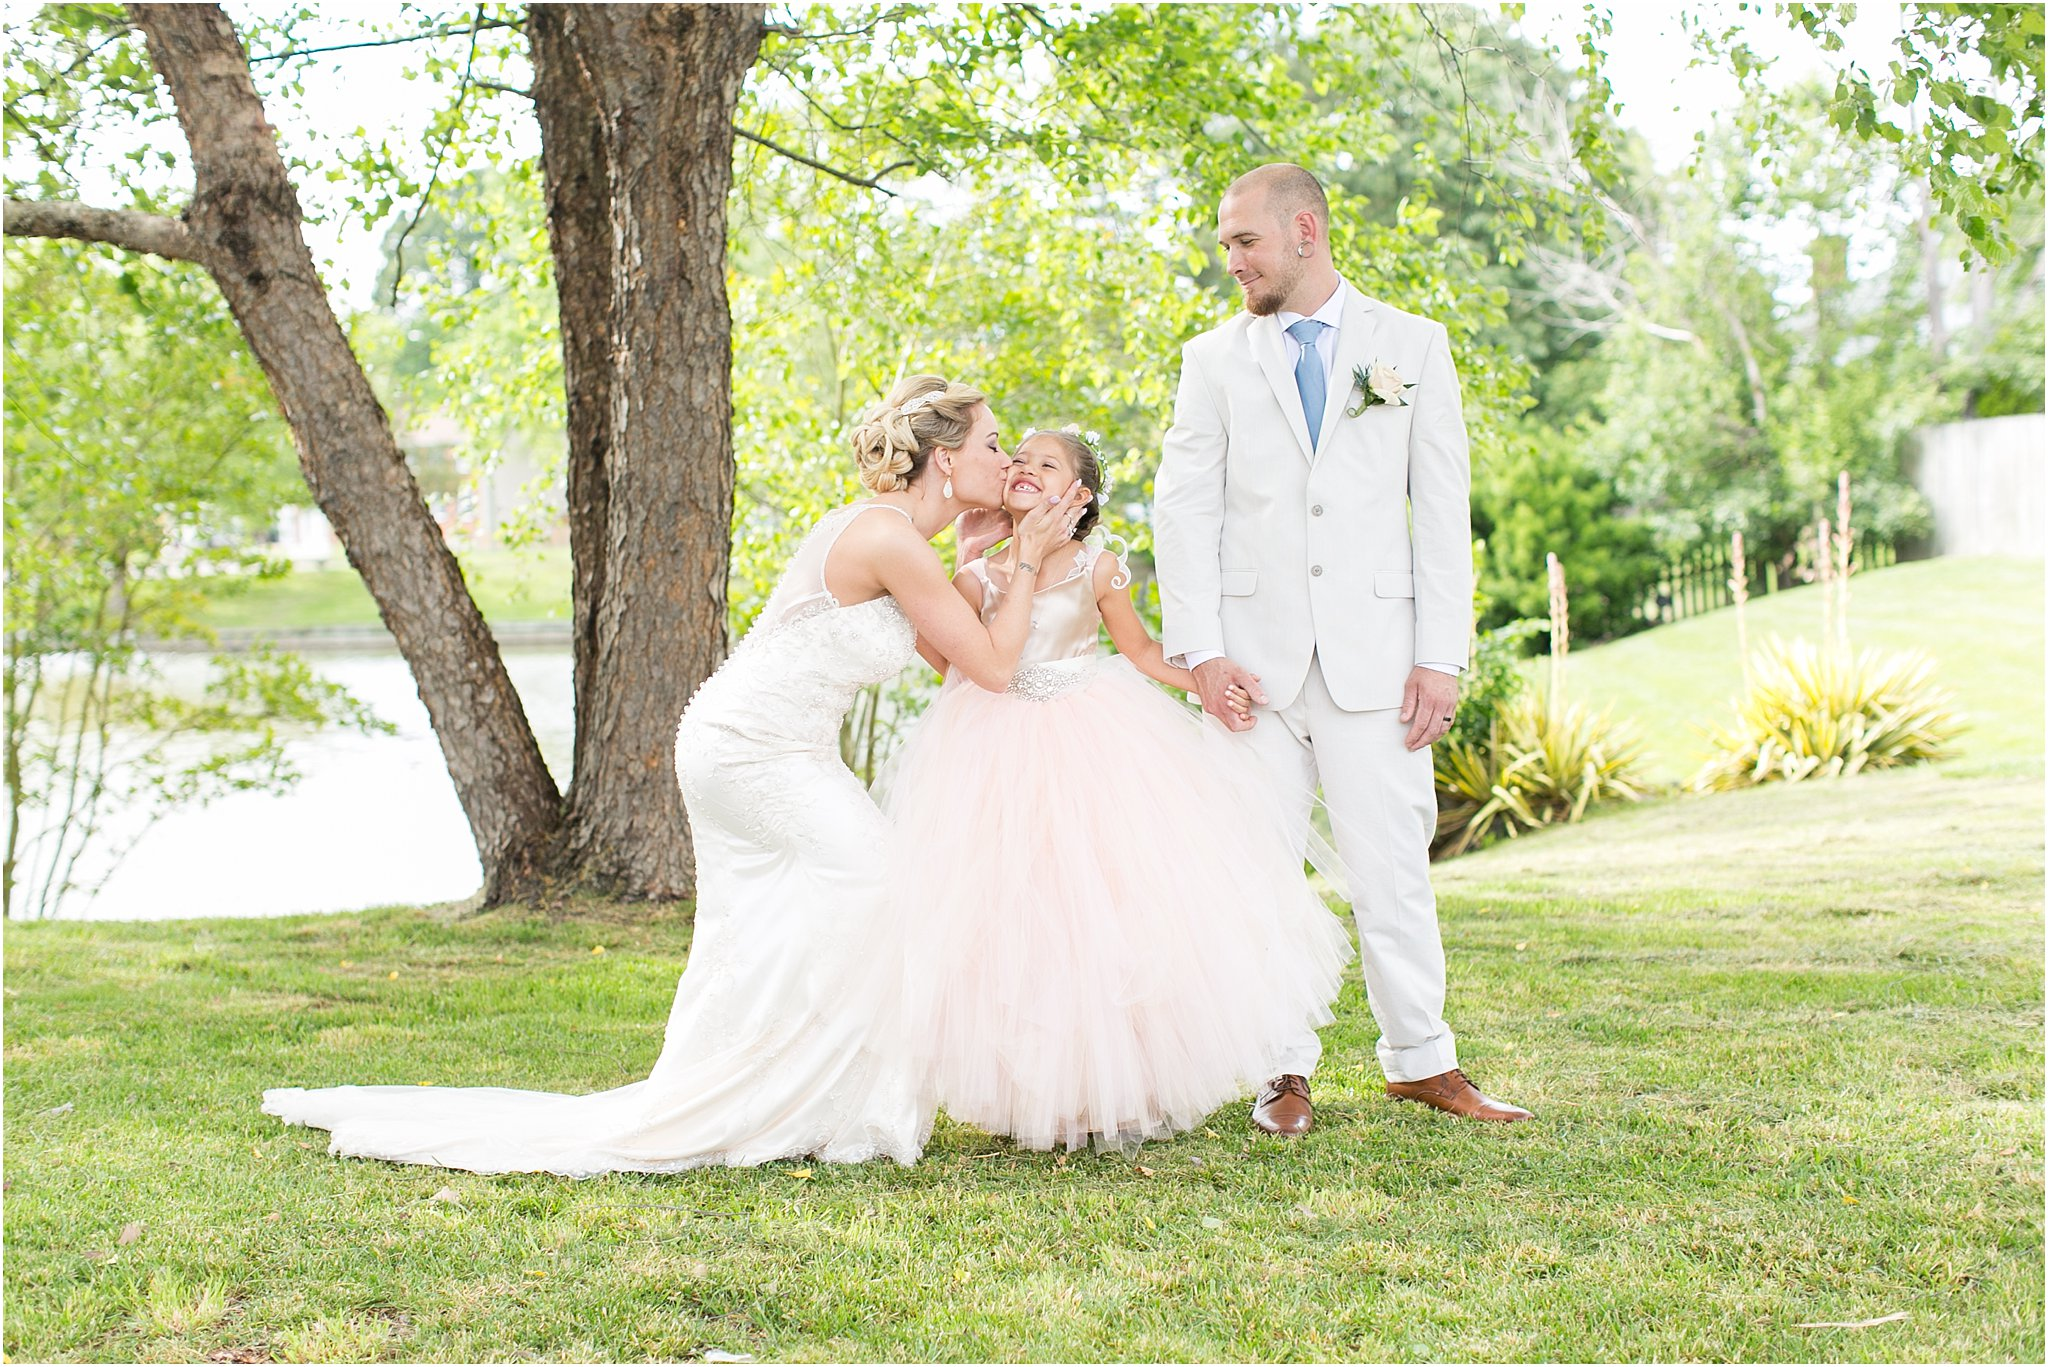 jessica_ryan_photography_virginia_virginiabeachweddingphotographer_studioIdo_backyardwedding_waterfrontwedding_1691